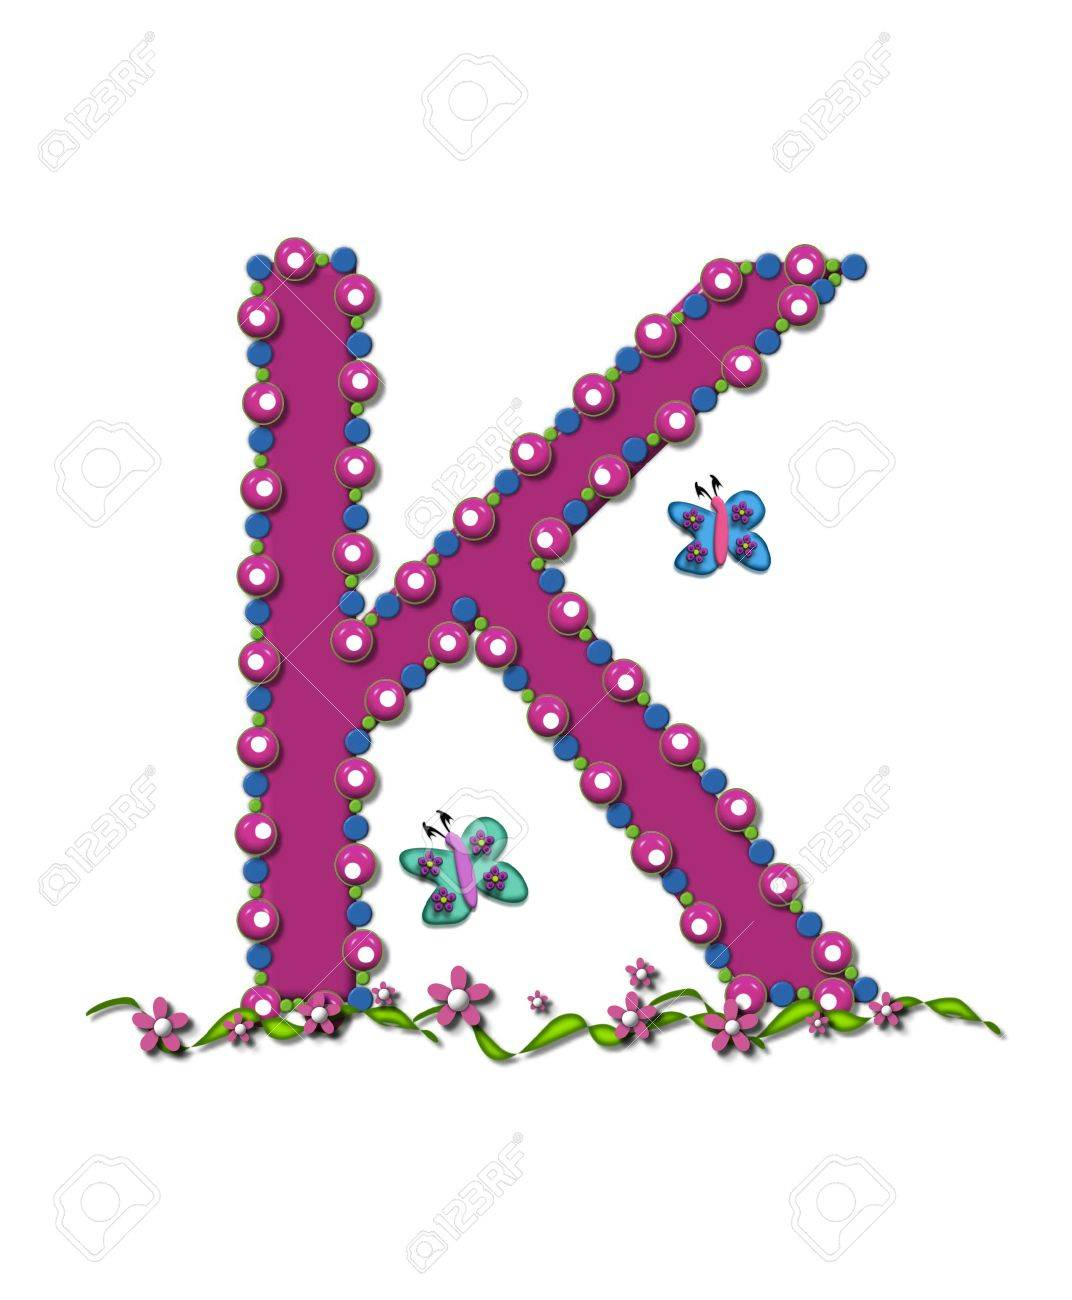 Letter K From Bead Alphabet Is Deep Rose In Color. Letter Is.. Stock ...